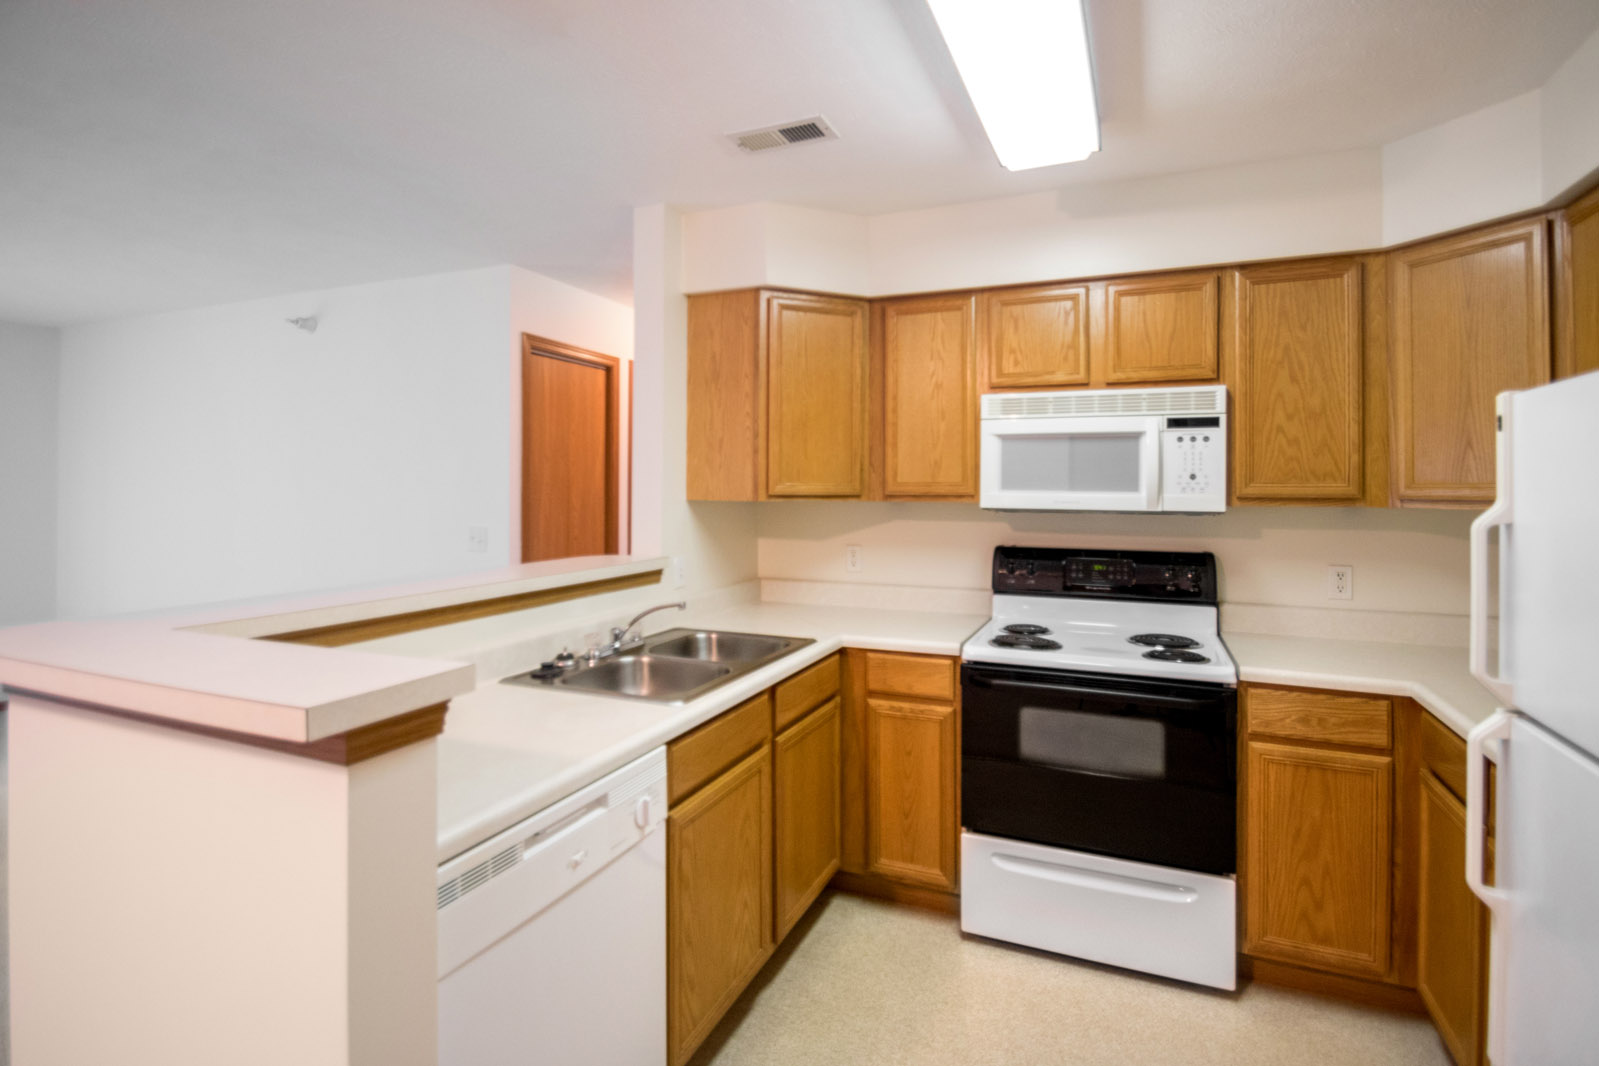 Wooden Cabinetry at Northridge Apartments in Gretna, Nebraska